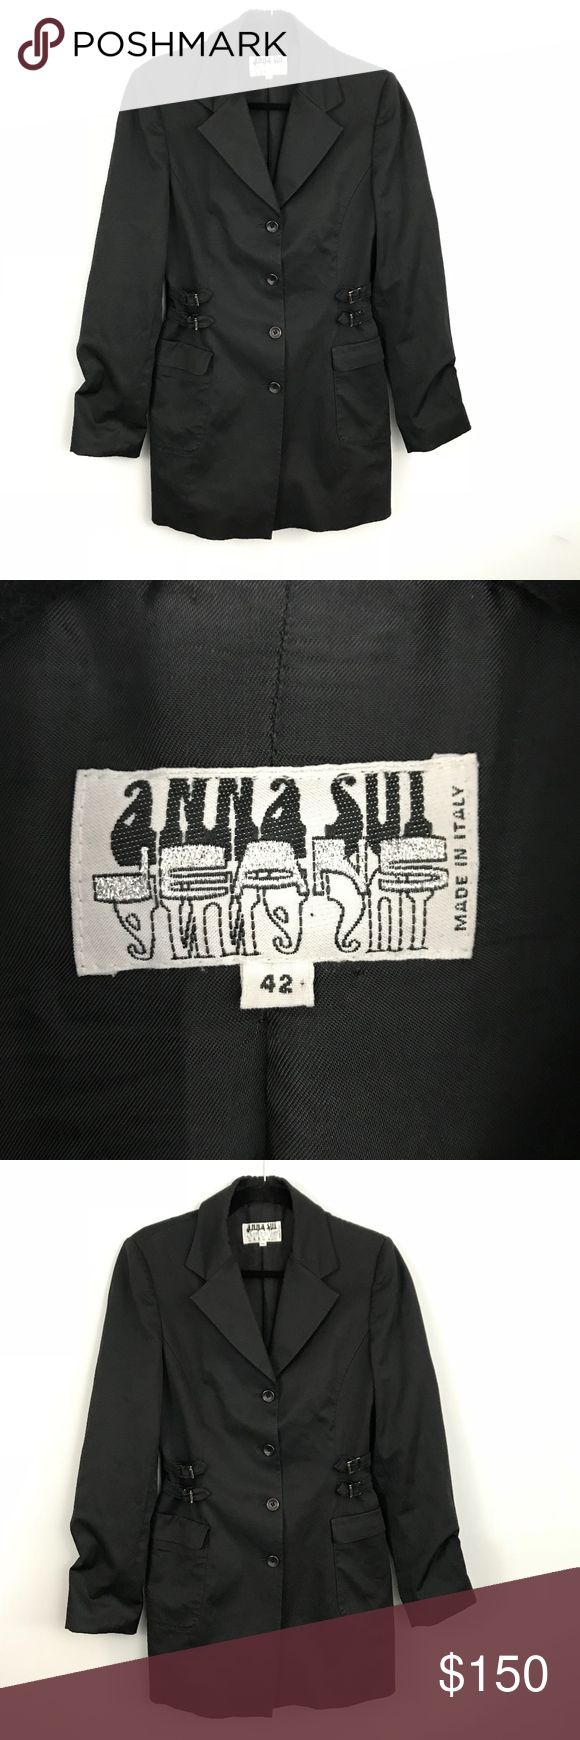 Vintage Anna Sui Black Trench Coat - Size 42 Vintage Anna Sui Black Trench Coat - Size 42  - Vintage Anna Sui Jeans - Made in Italy - Euro size 42 / US size 8 - Trench Coat Jacket - Button front - Notched Collar - Lined - Belt detailed sides - Vented back - Great condition Anna Sui Jackets & Coats Trench Coats